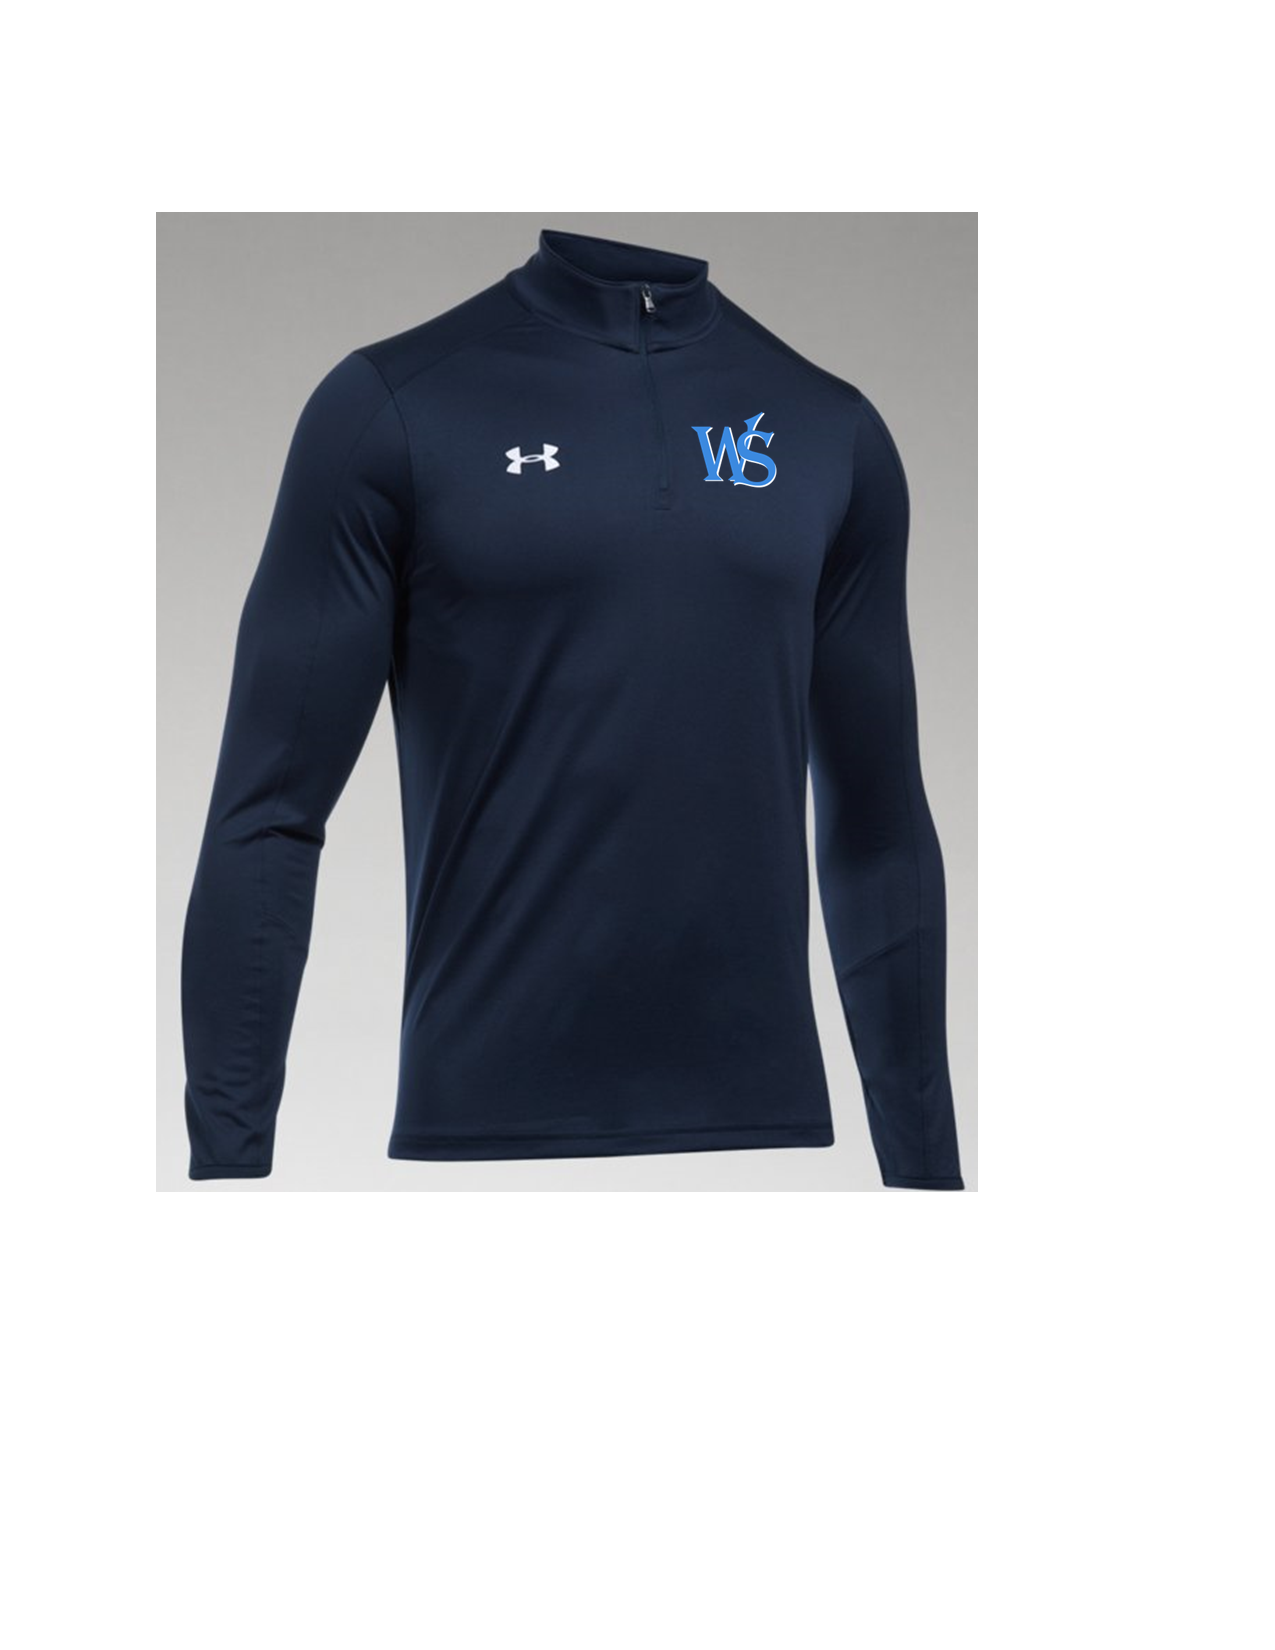 Men's Under Armour Locker 1/4 Zip